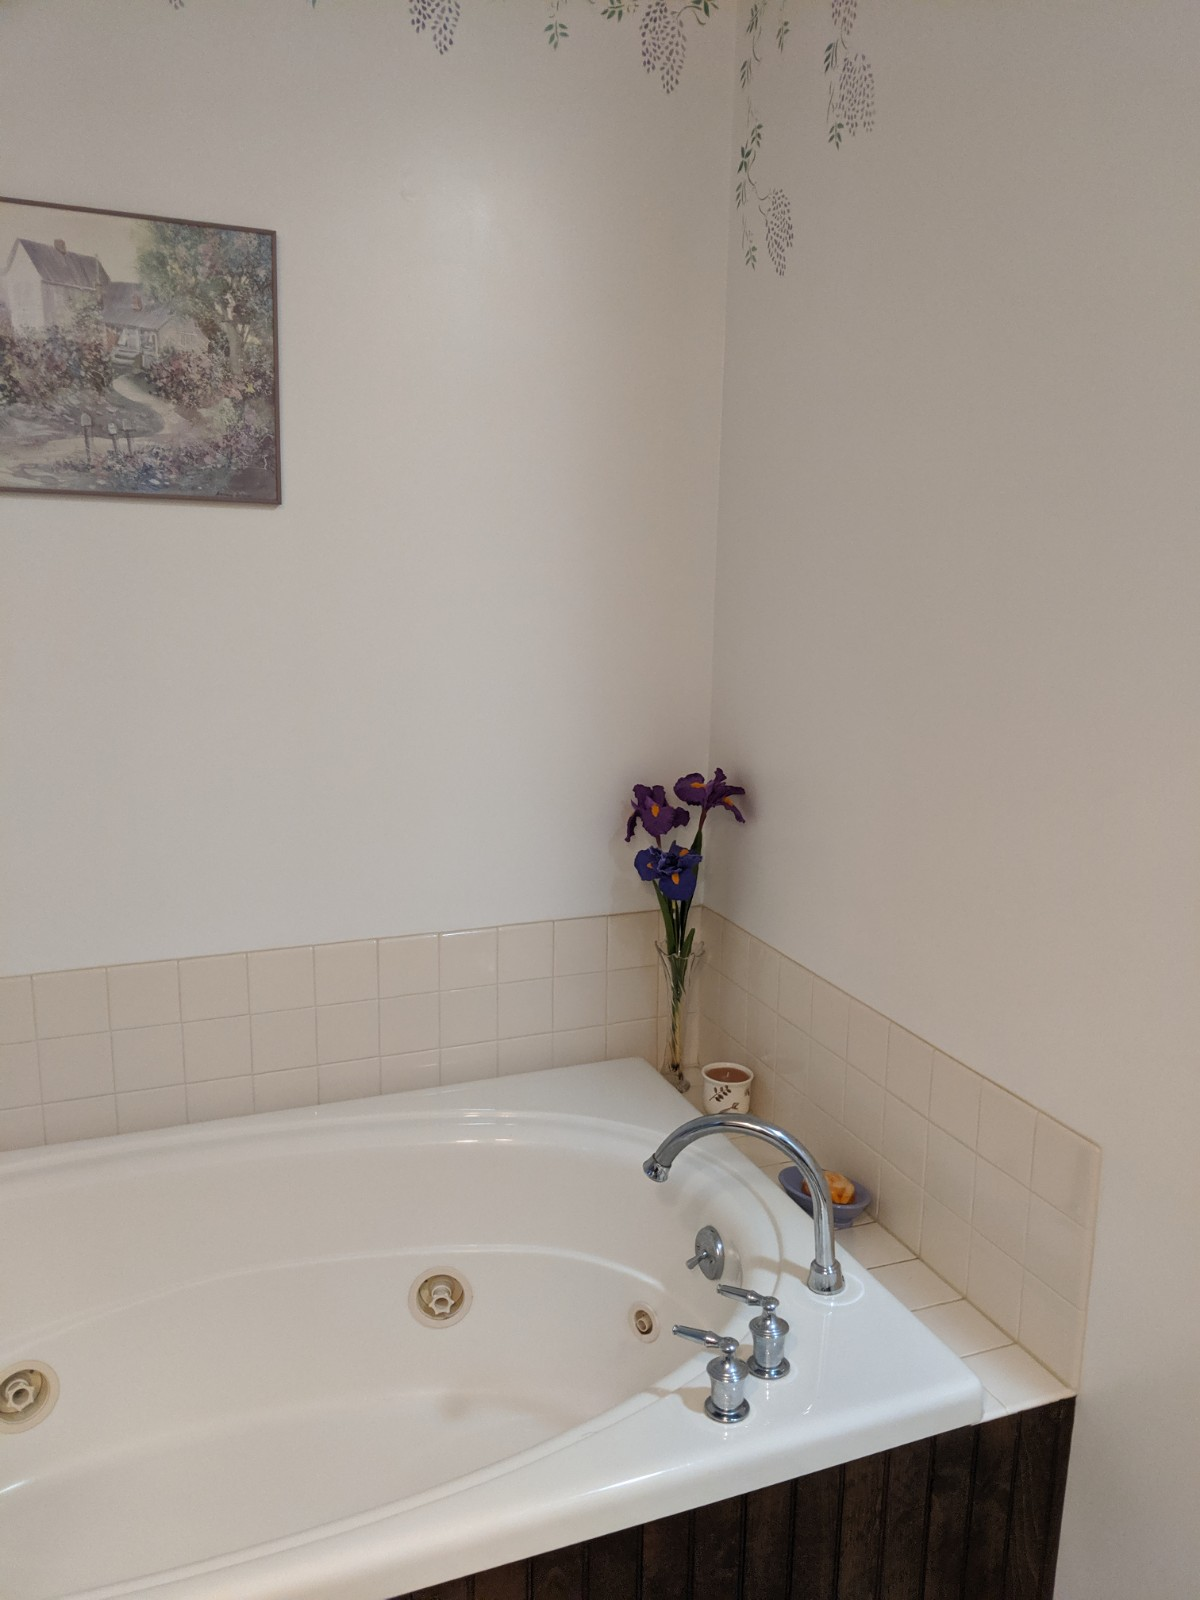 Tub area before the renovation, plan walls, tile and an outdated whirlpool tub